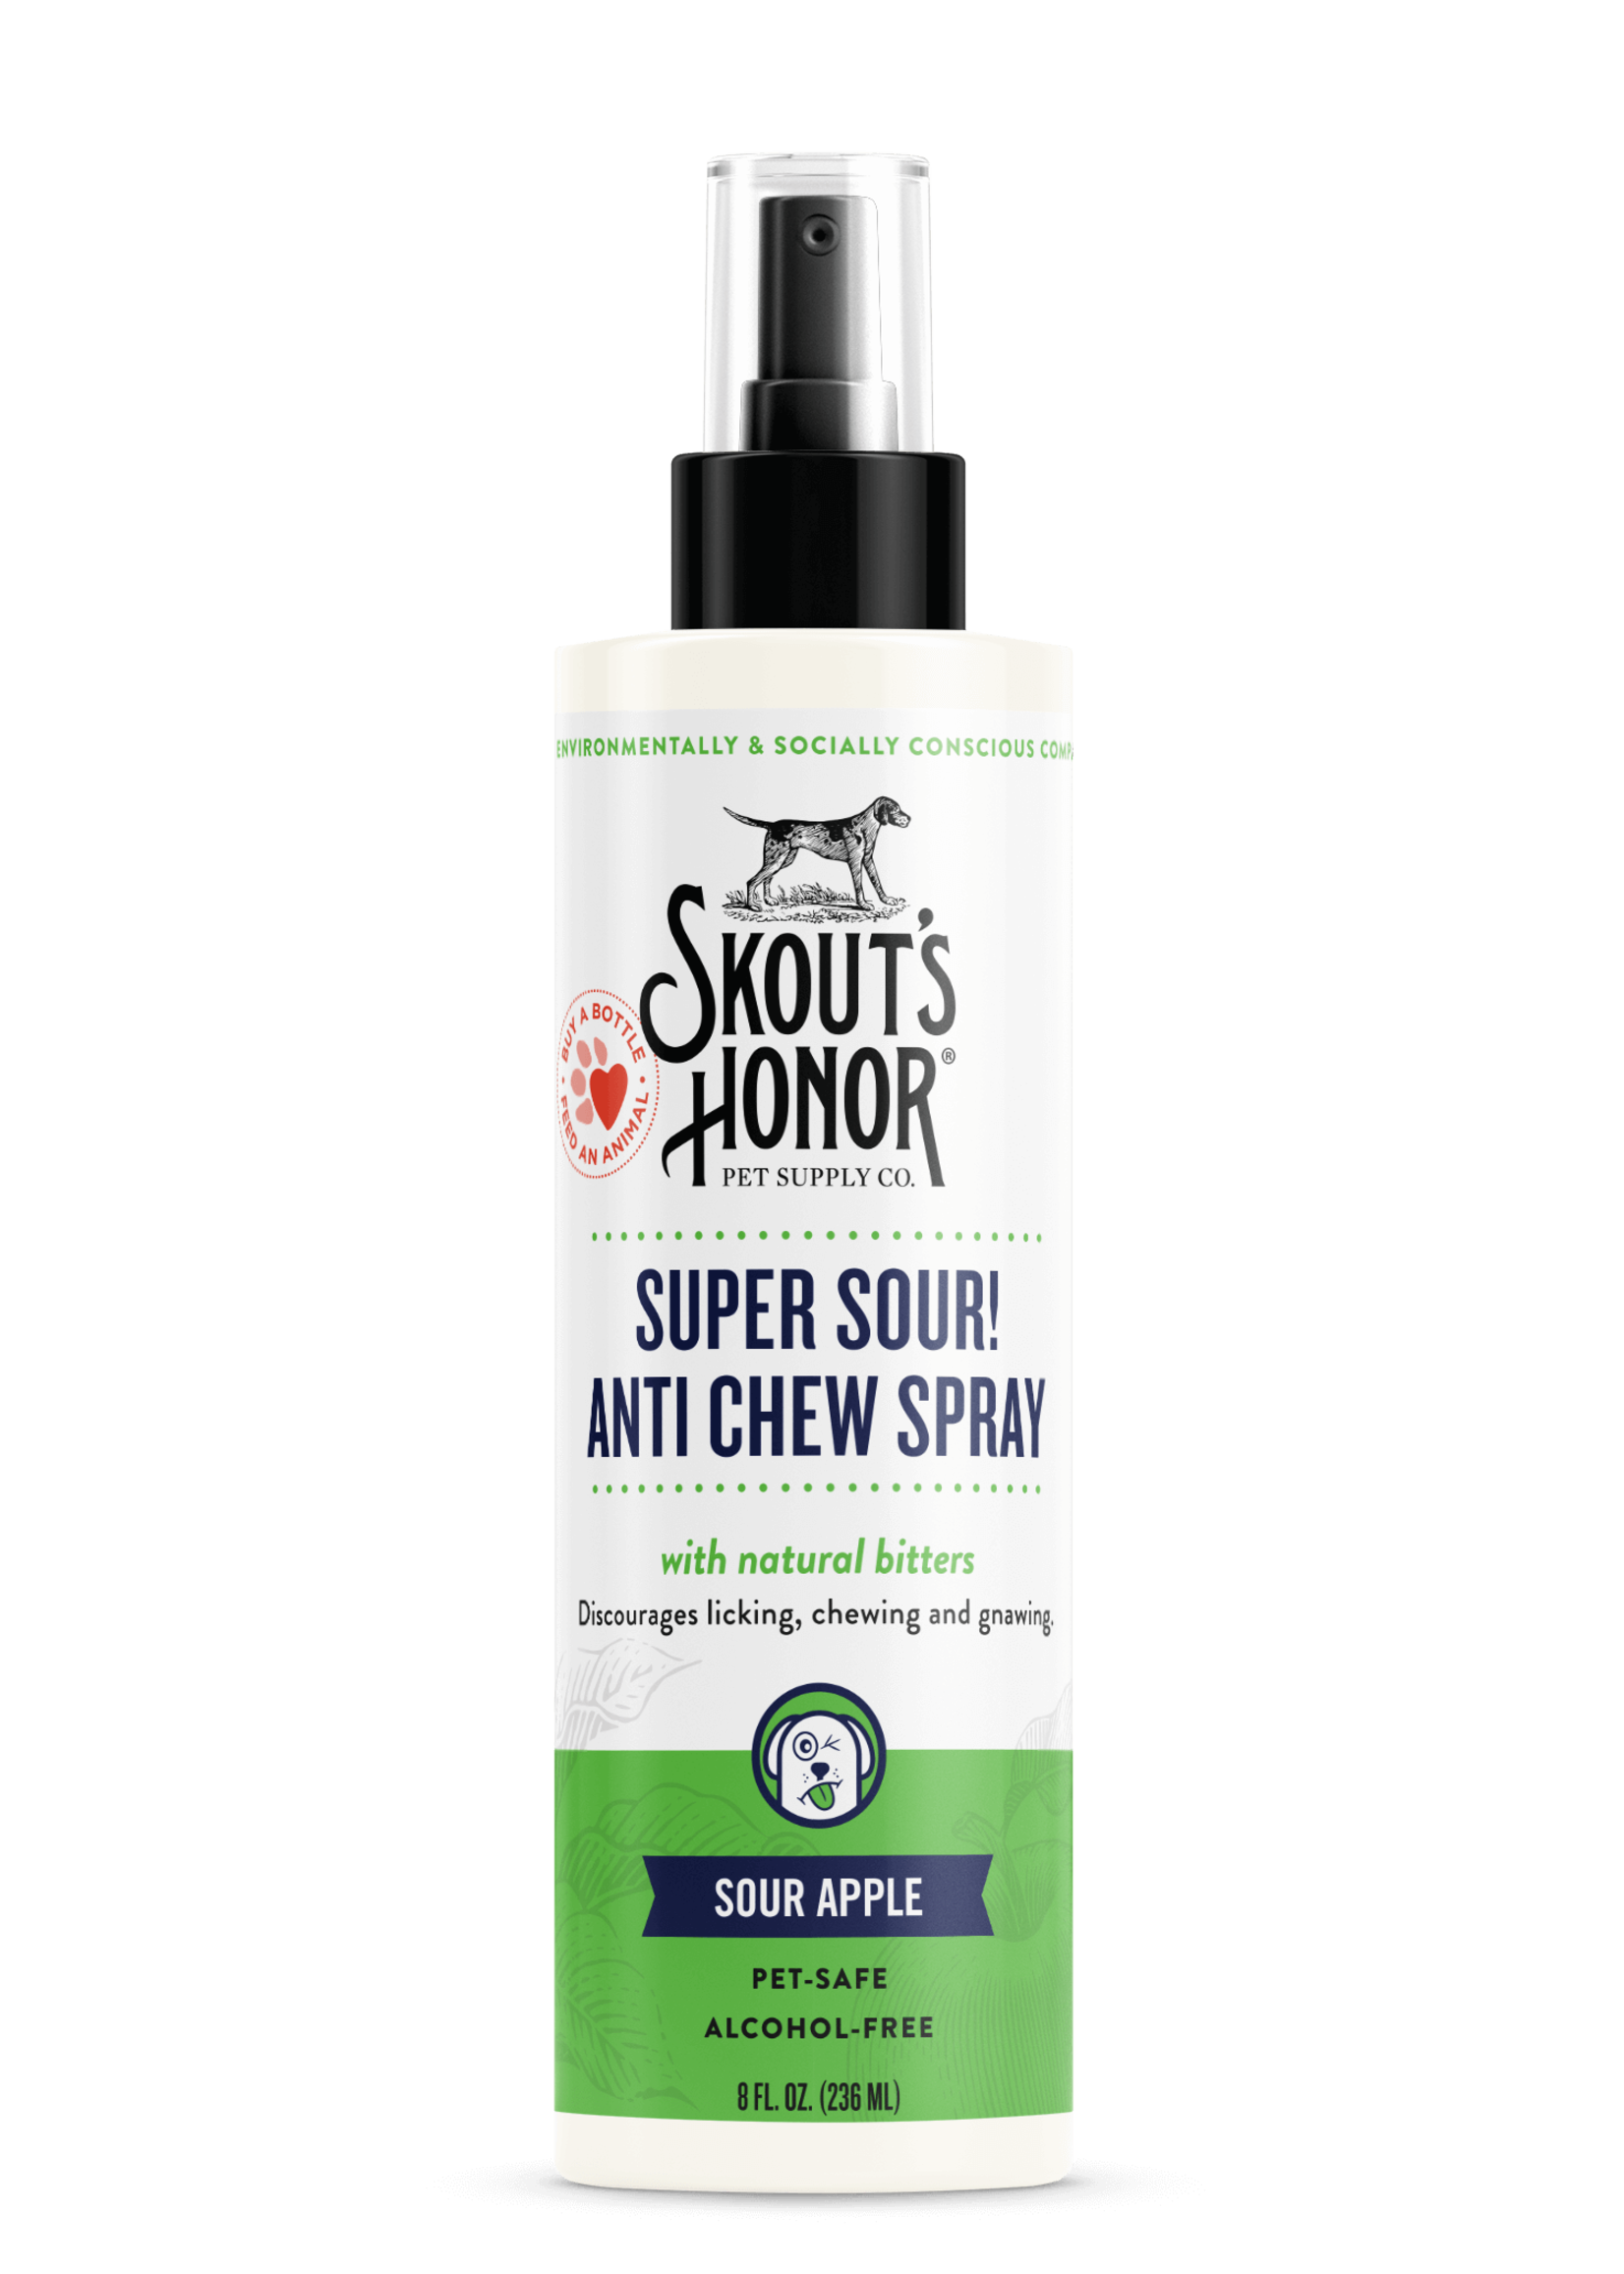 Skout's Honor Skout's Honor Anti Chew Spray